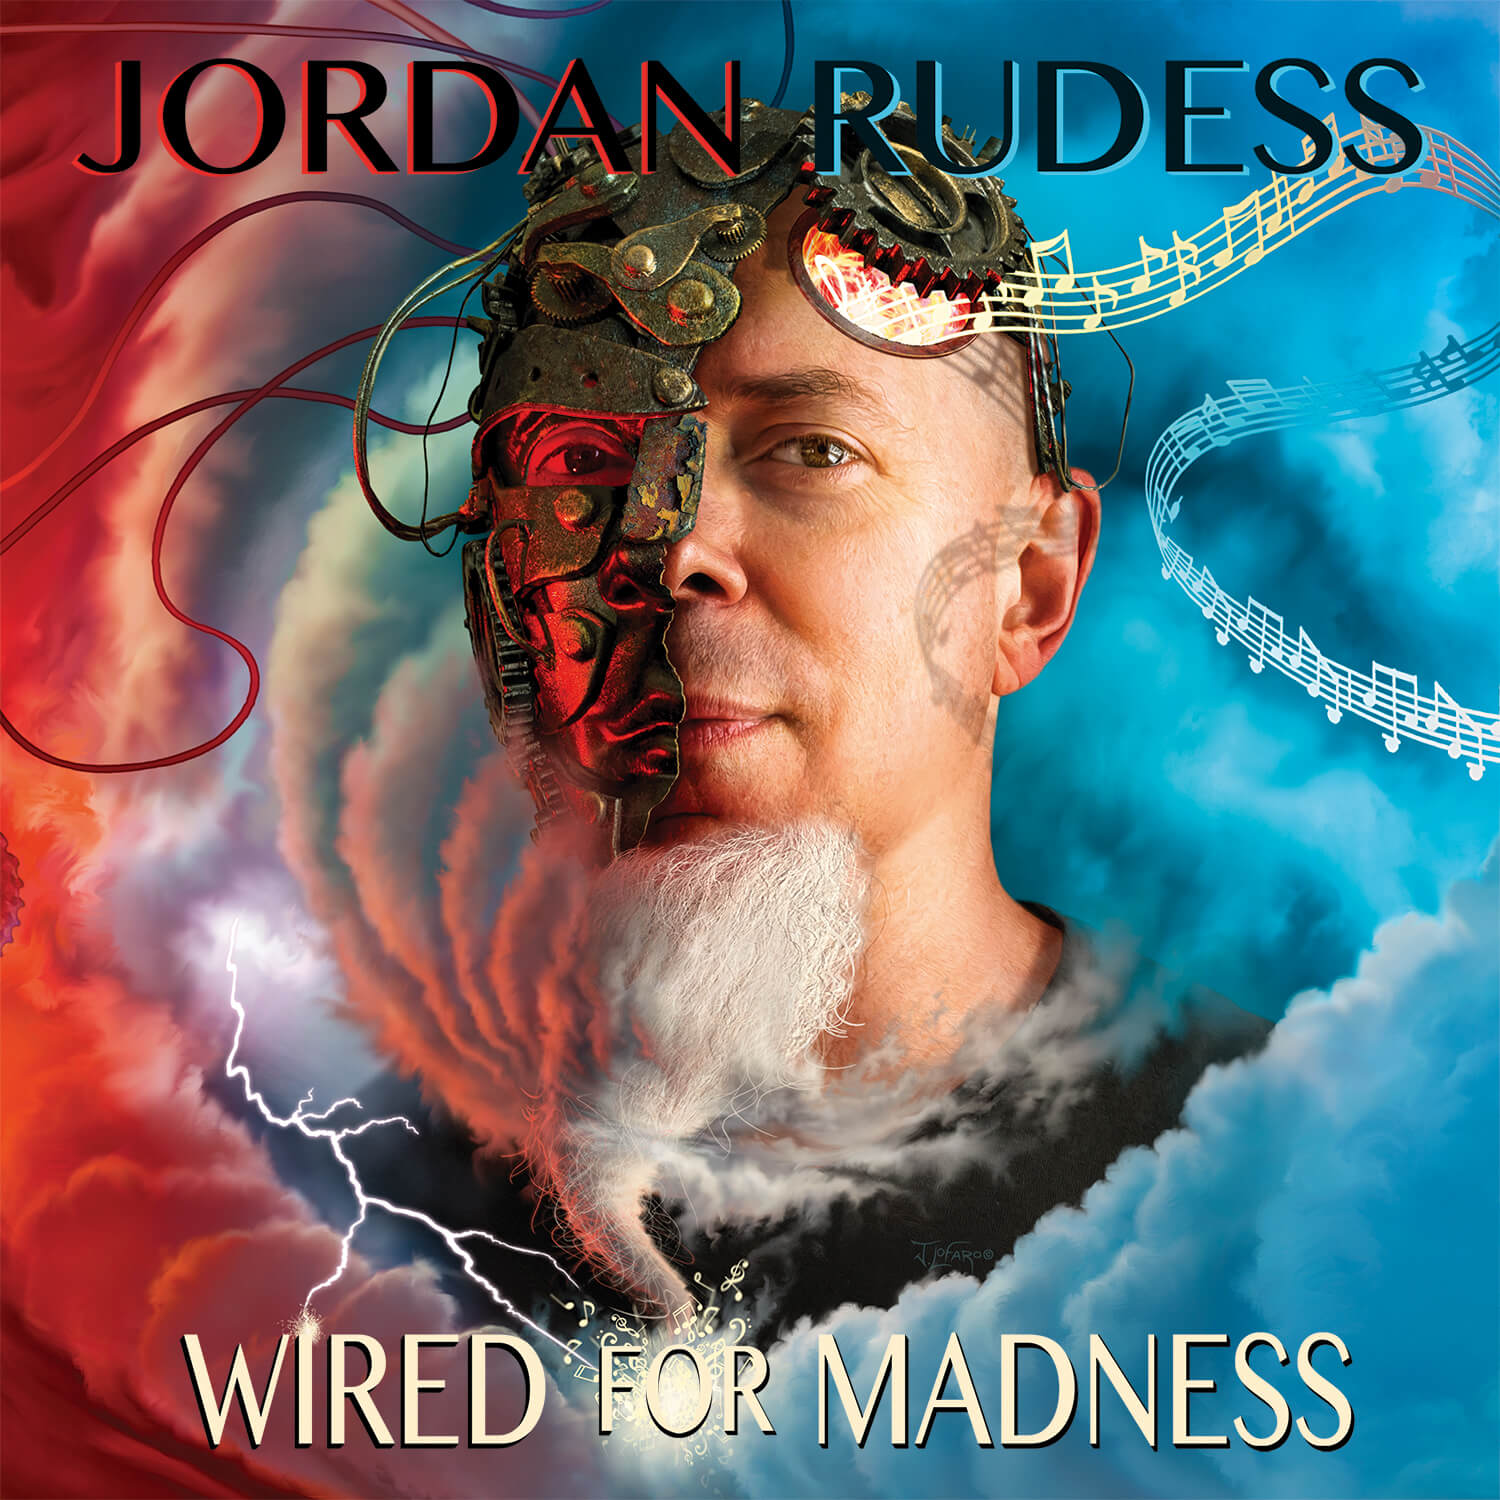 Jordan Rudess : Wired For Madness